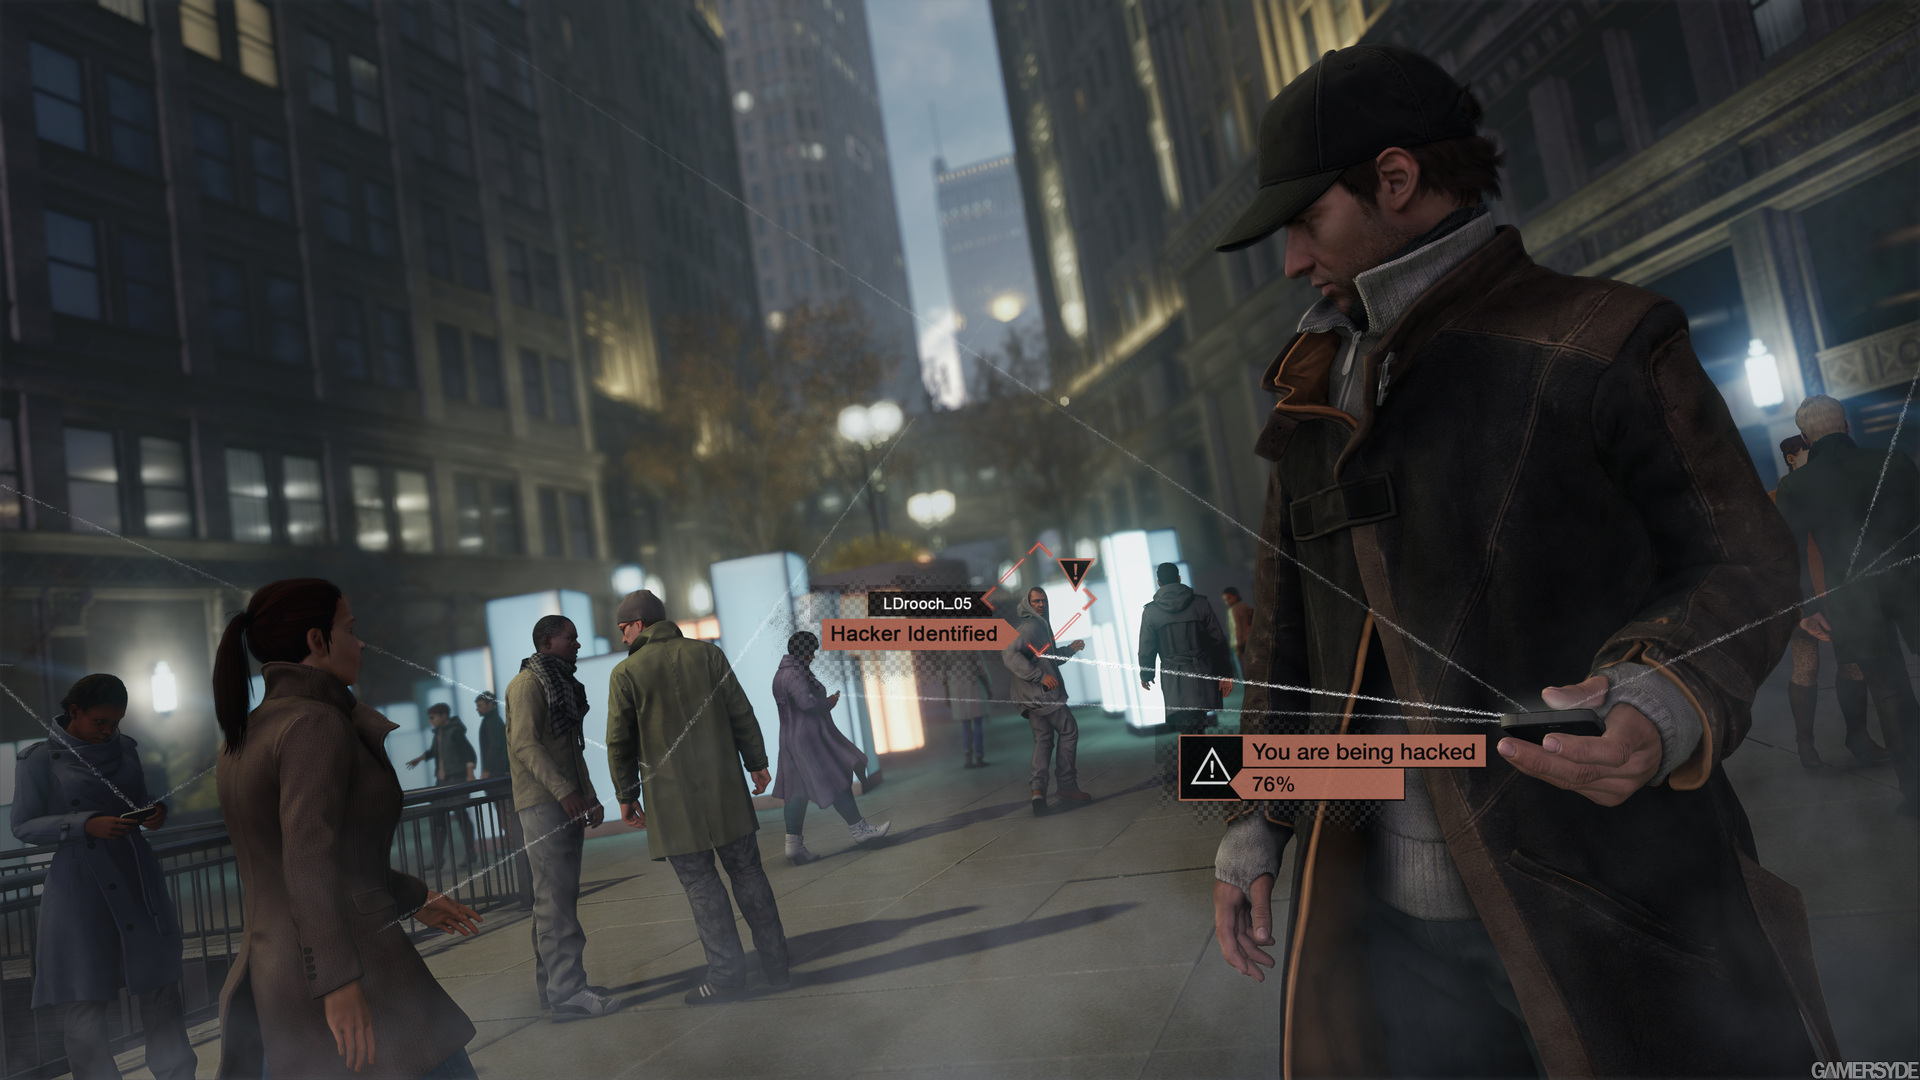 watch_dogs_screenshot_gamescom_05